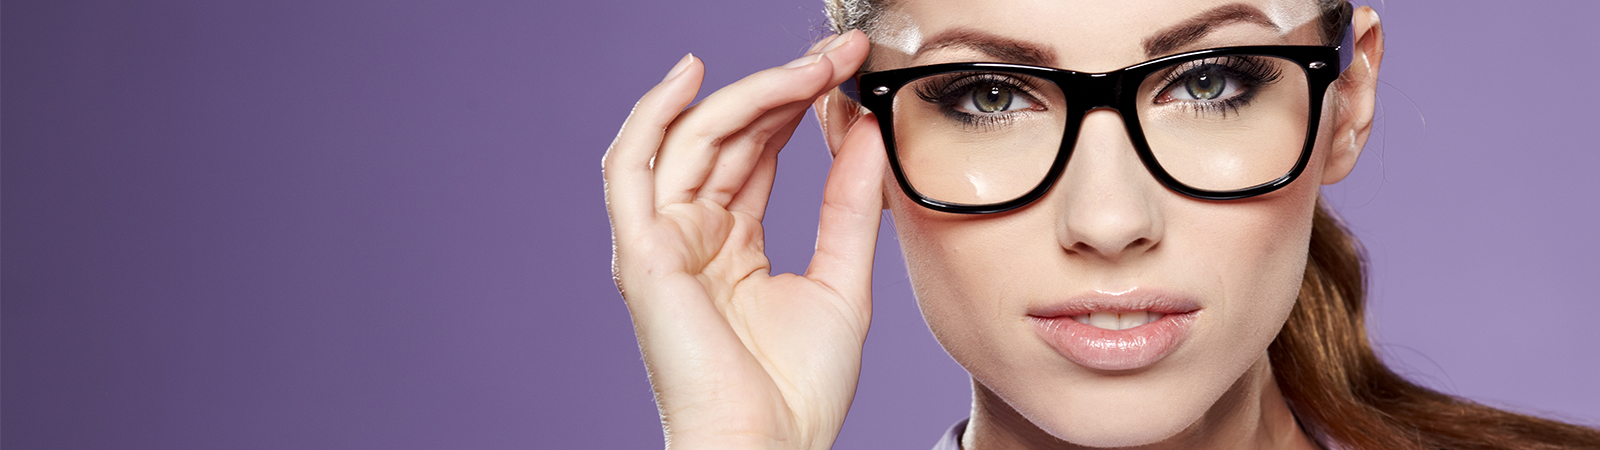 Spectacles-Reviews-Image-BG